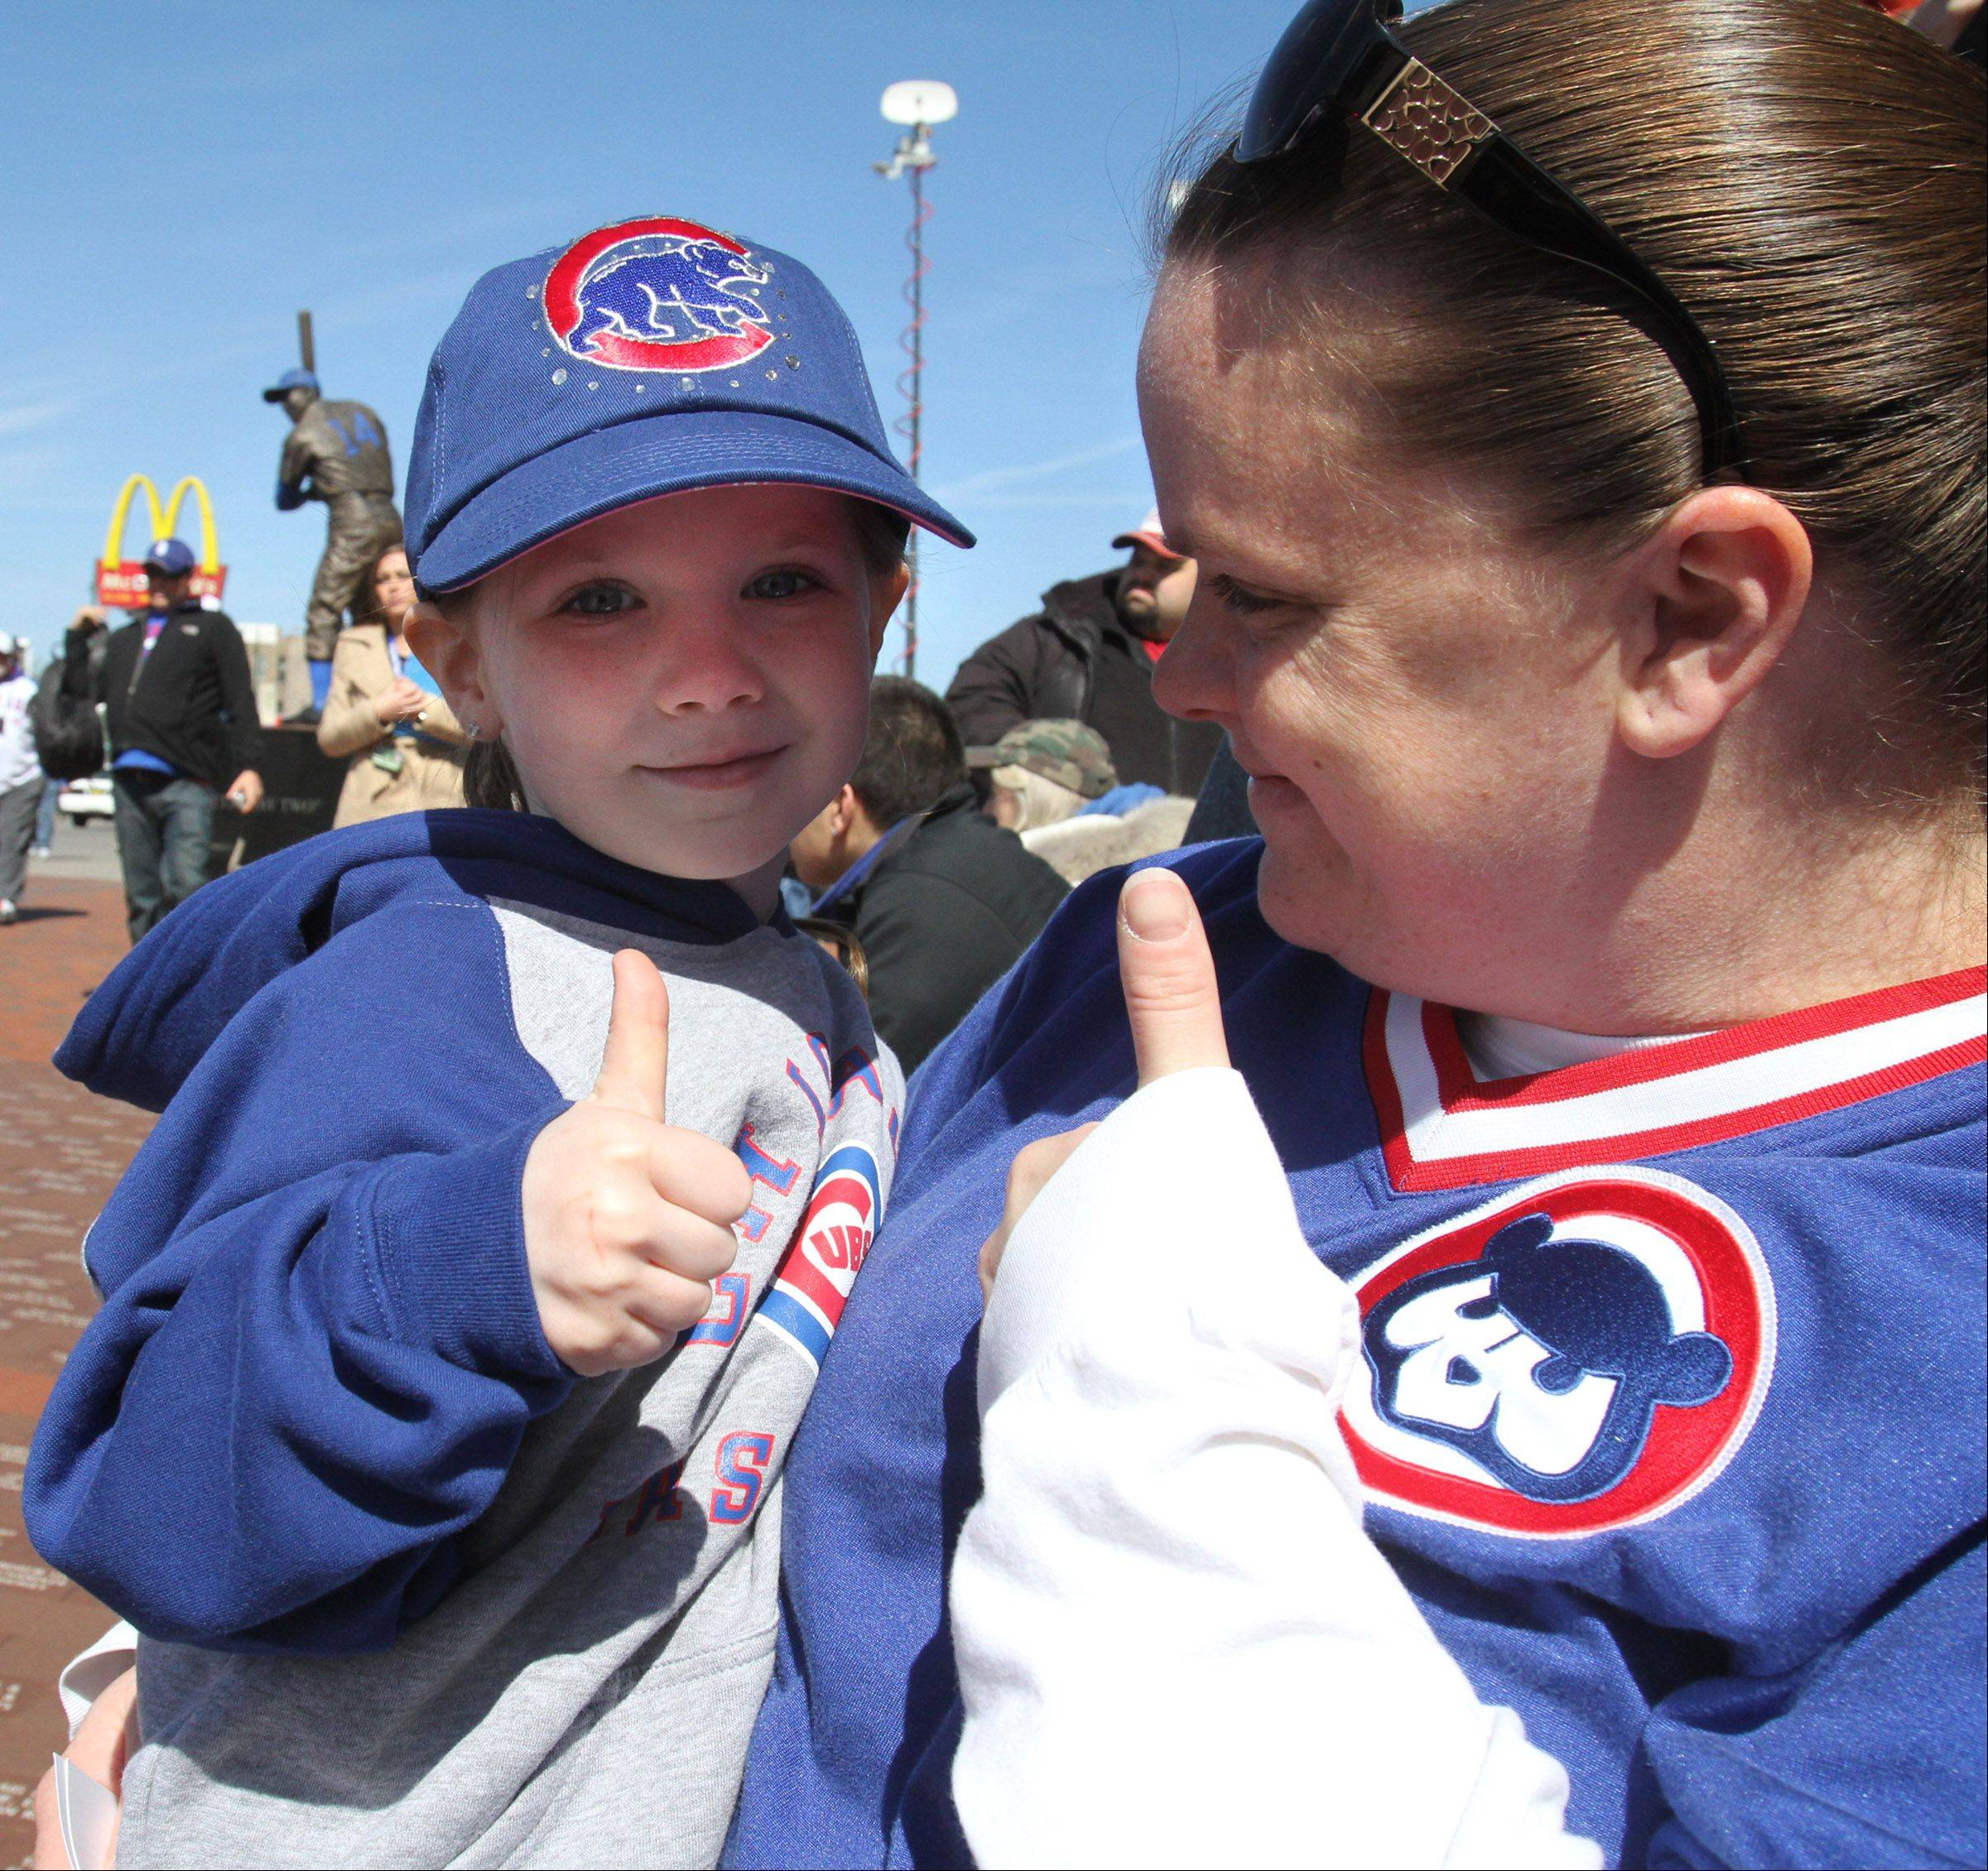 Amanda Tomasello of Bartlett and her daughter predict a good Cubs season in front of Wrigley Field on Opening Day Thursday.